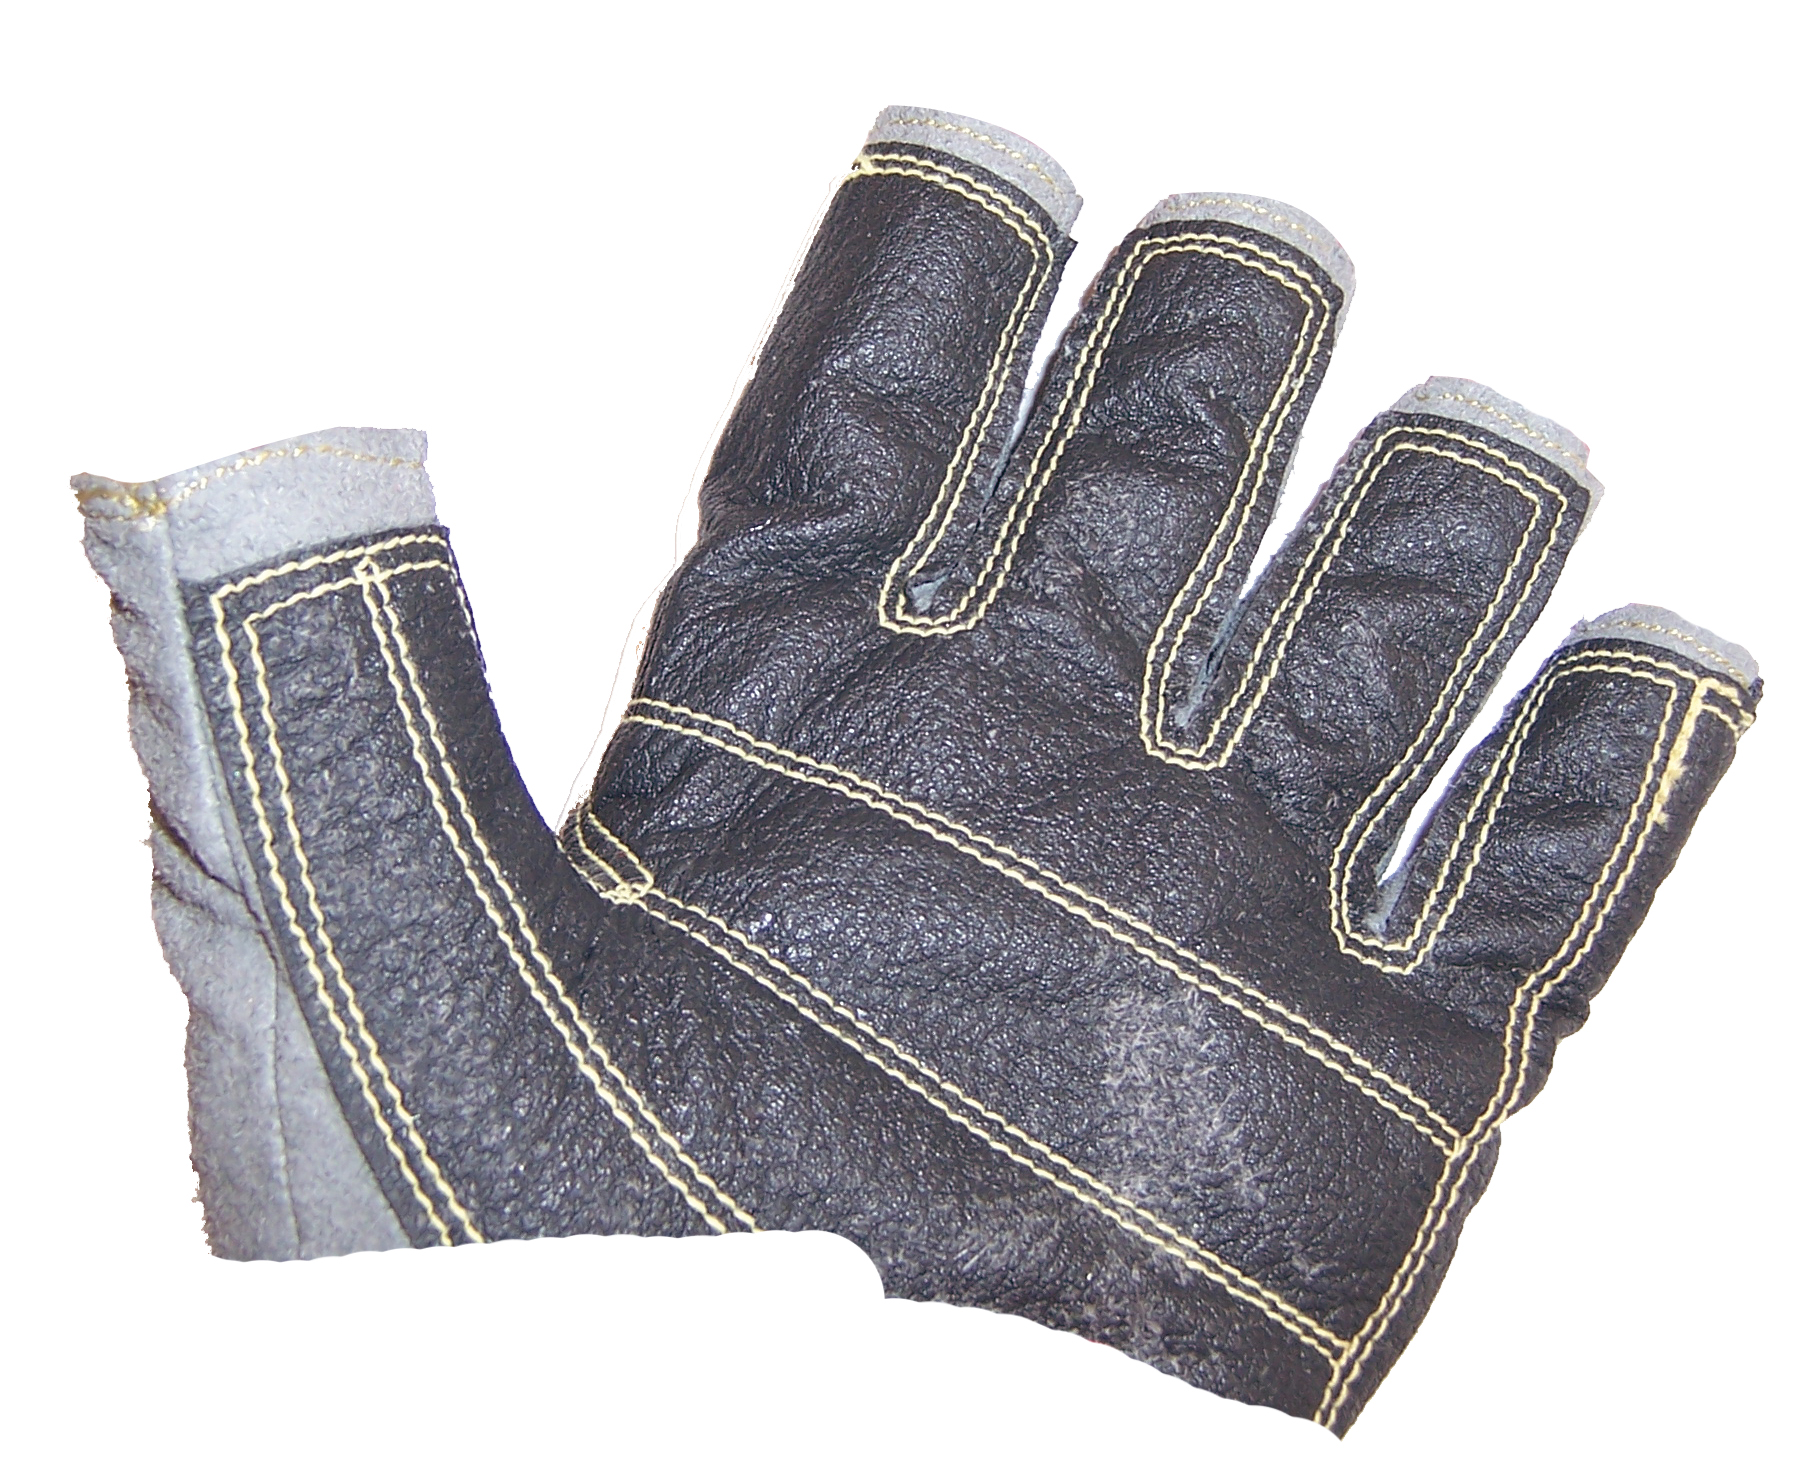 GLOVES-FINGERLESS MD STICKY